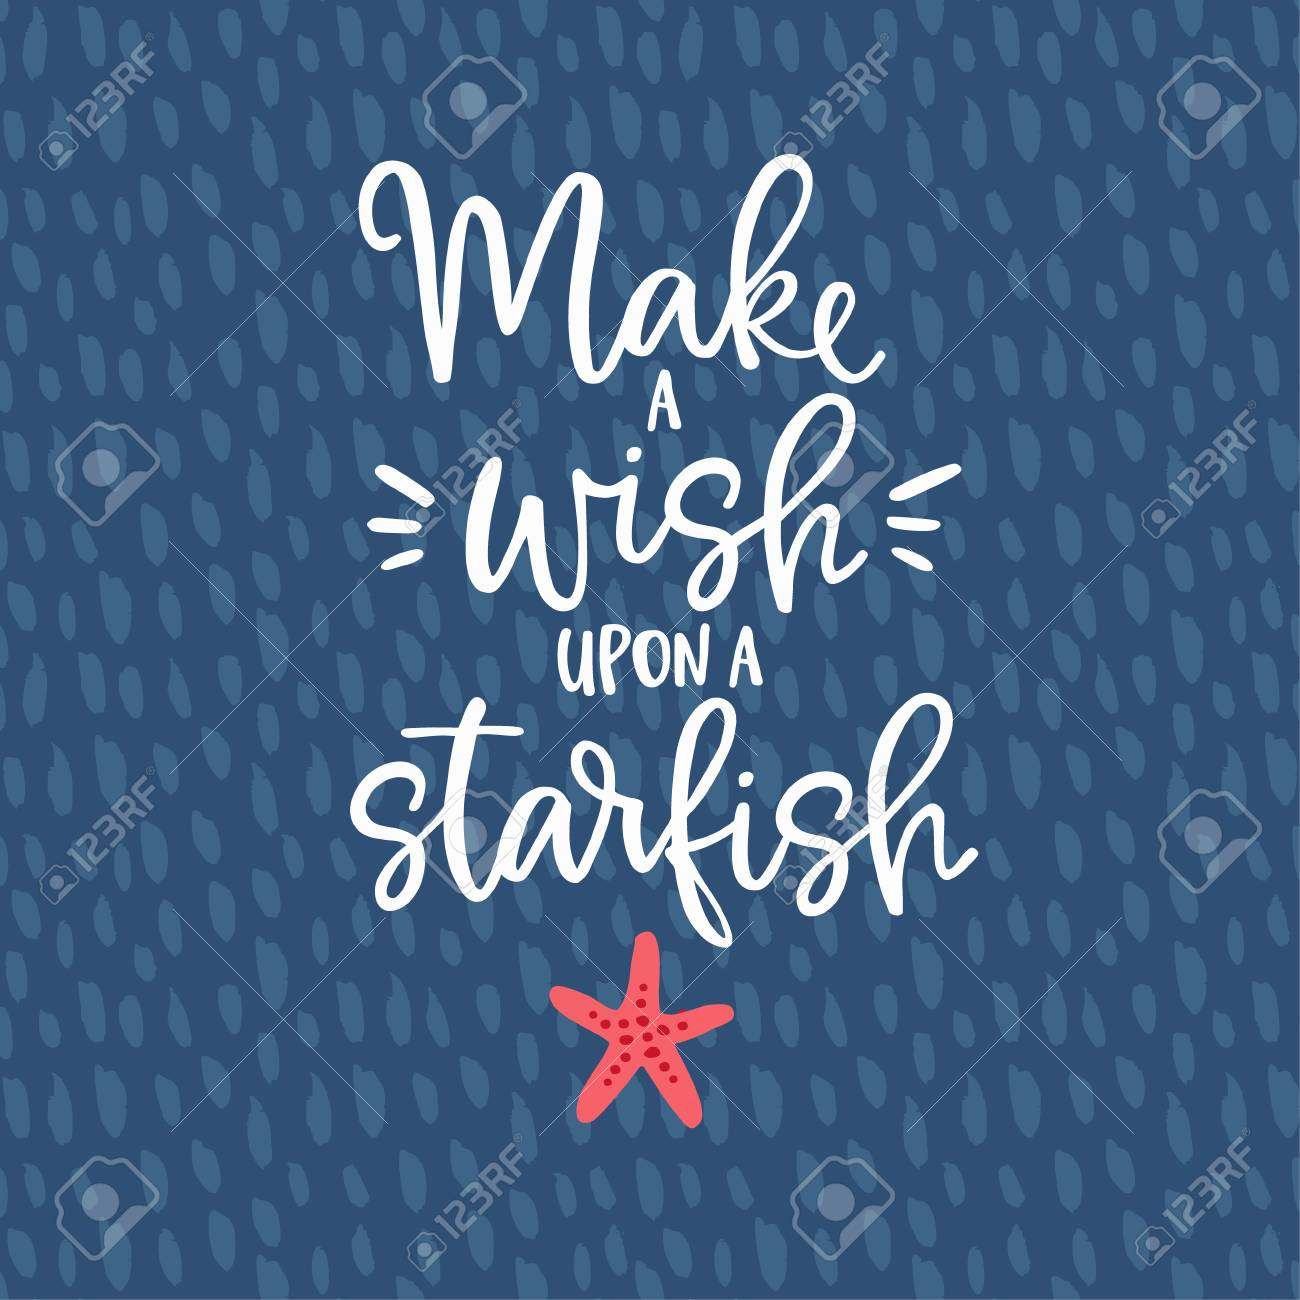 Make a wish upon a starfish. Hand drawn lettering quote card..